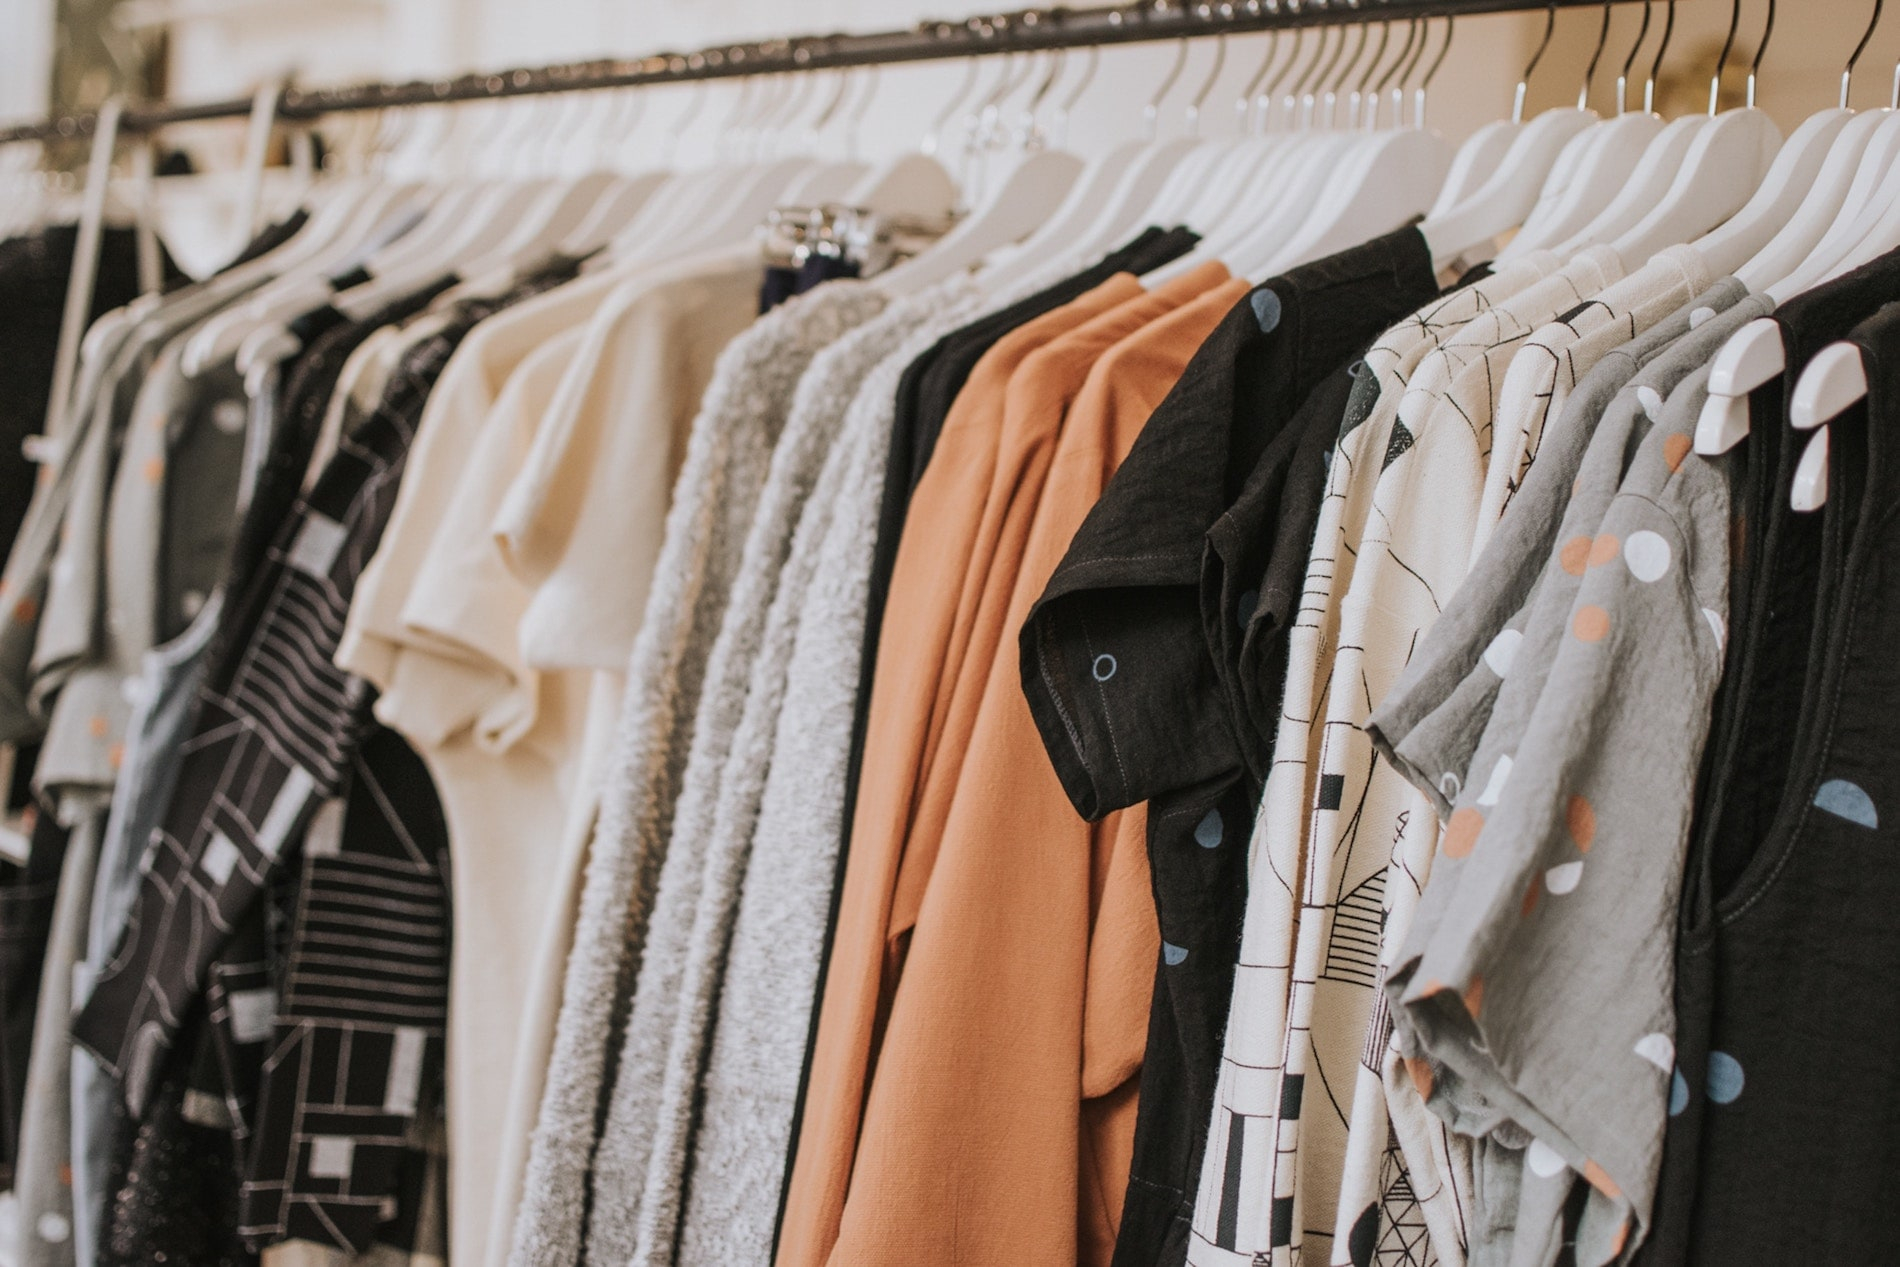 How to Start a Clothing Line in 4 Steps